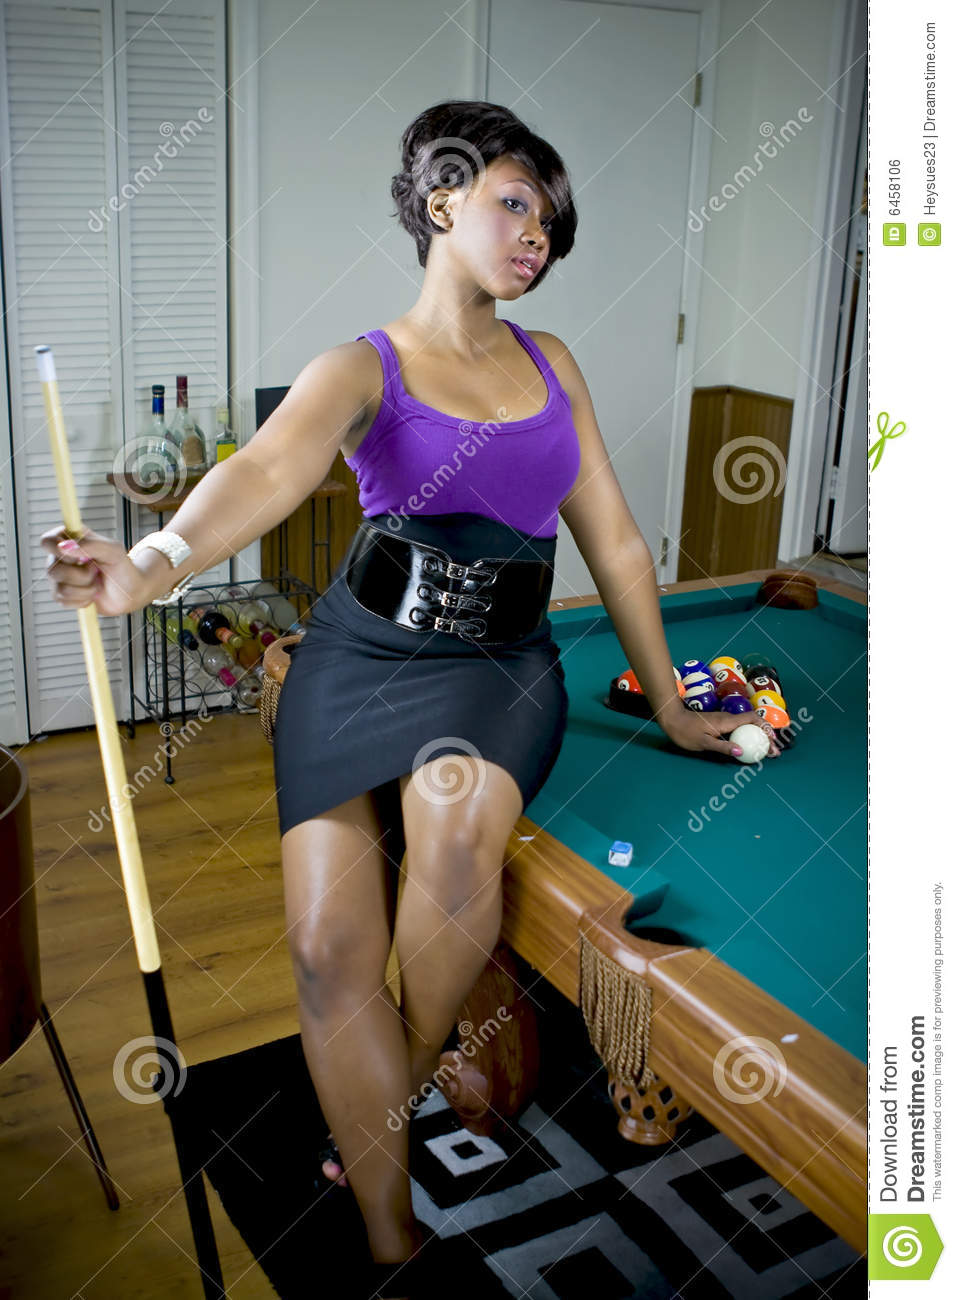 Sexy Game Of Pool Royalty Free Stock Image Image 6458106